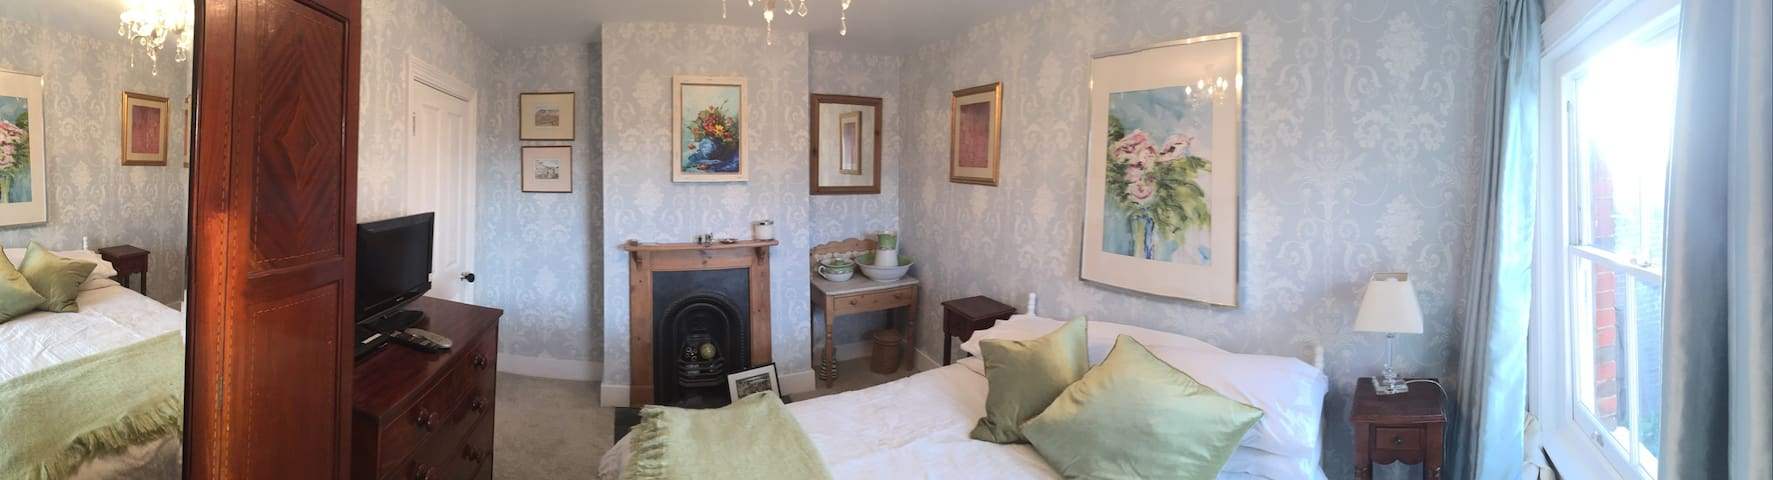 Beautiful comfortable room in best part of Farnham - Farnham - Haus